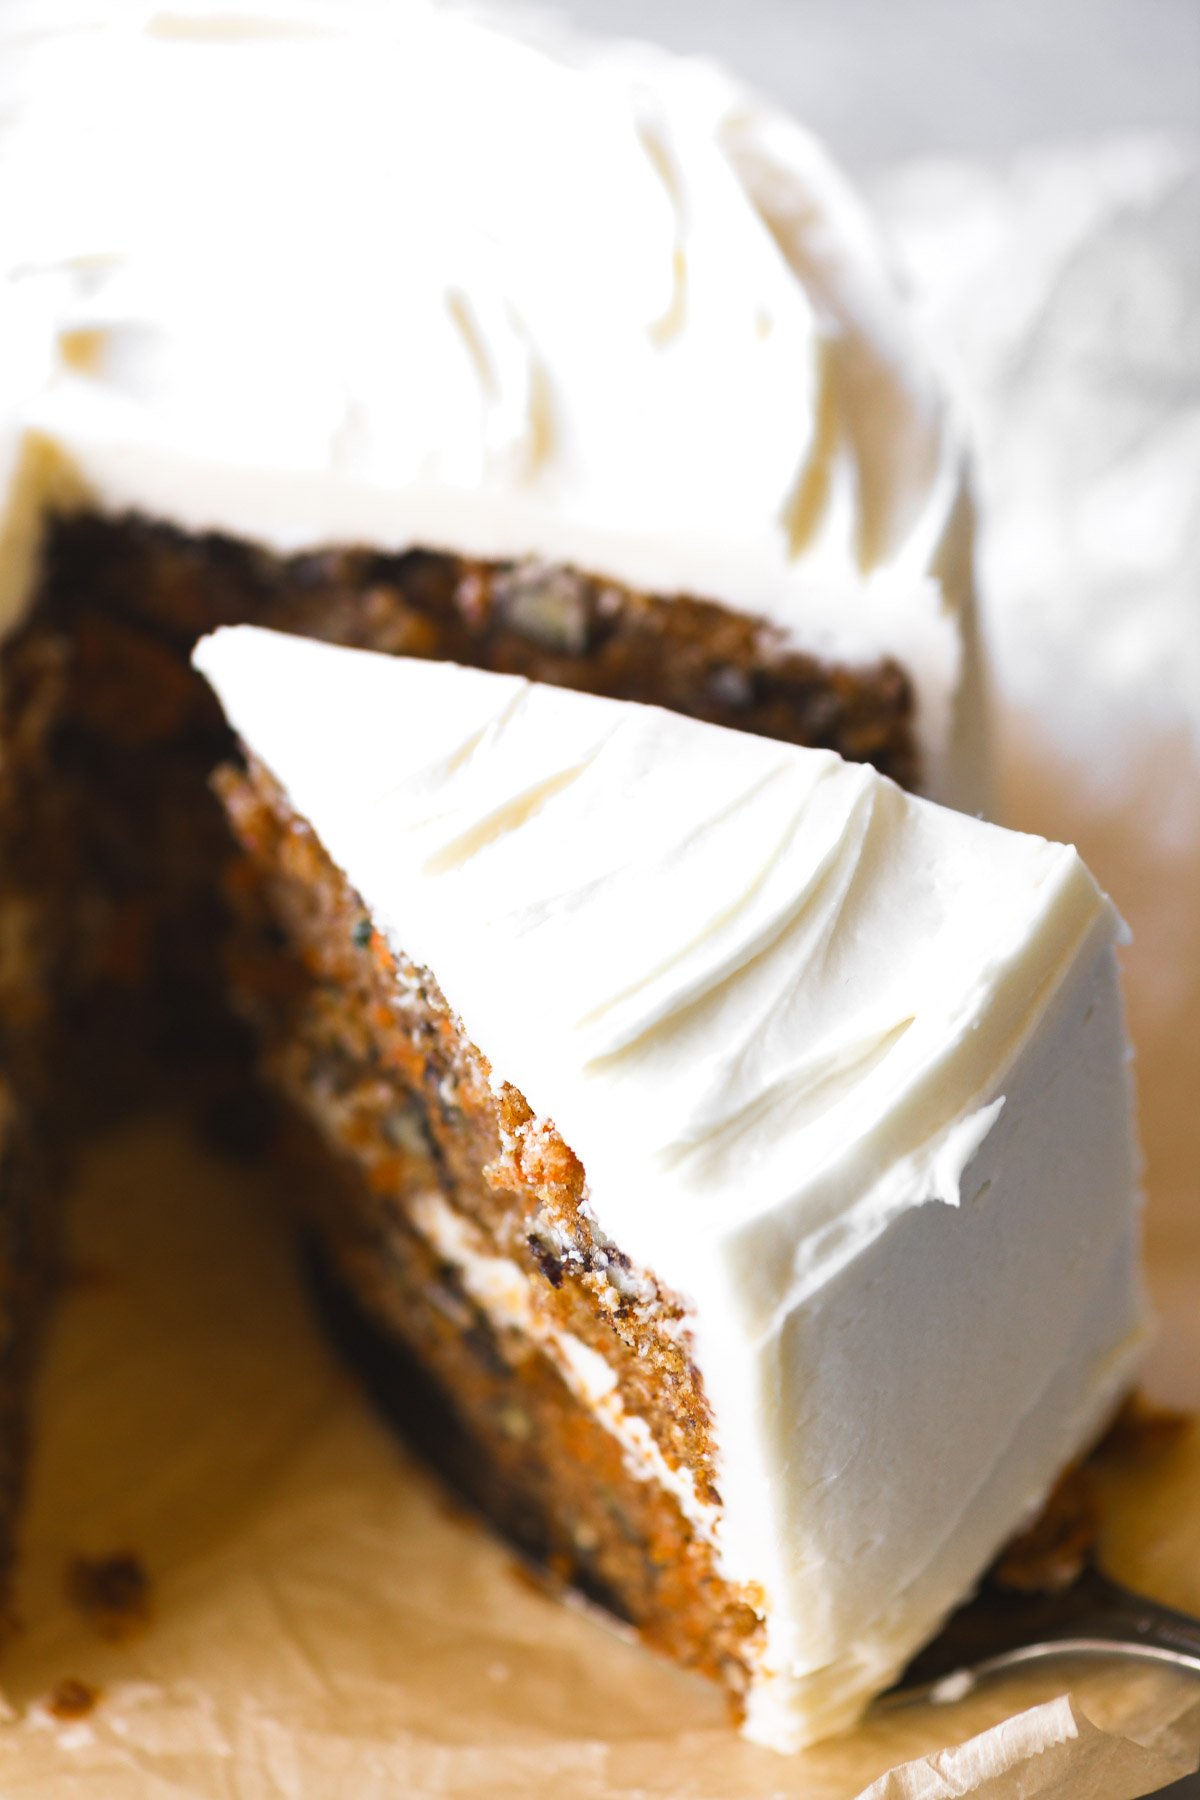 Removing a slice of carrot cake with cream cheese frosting